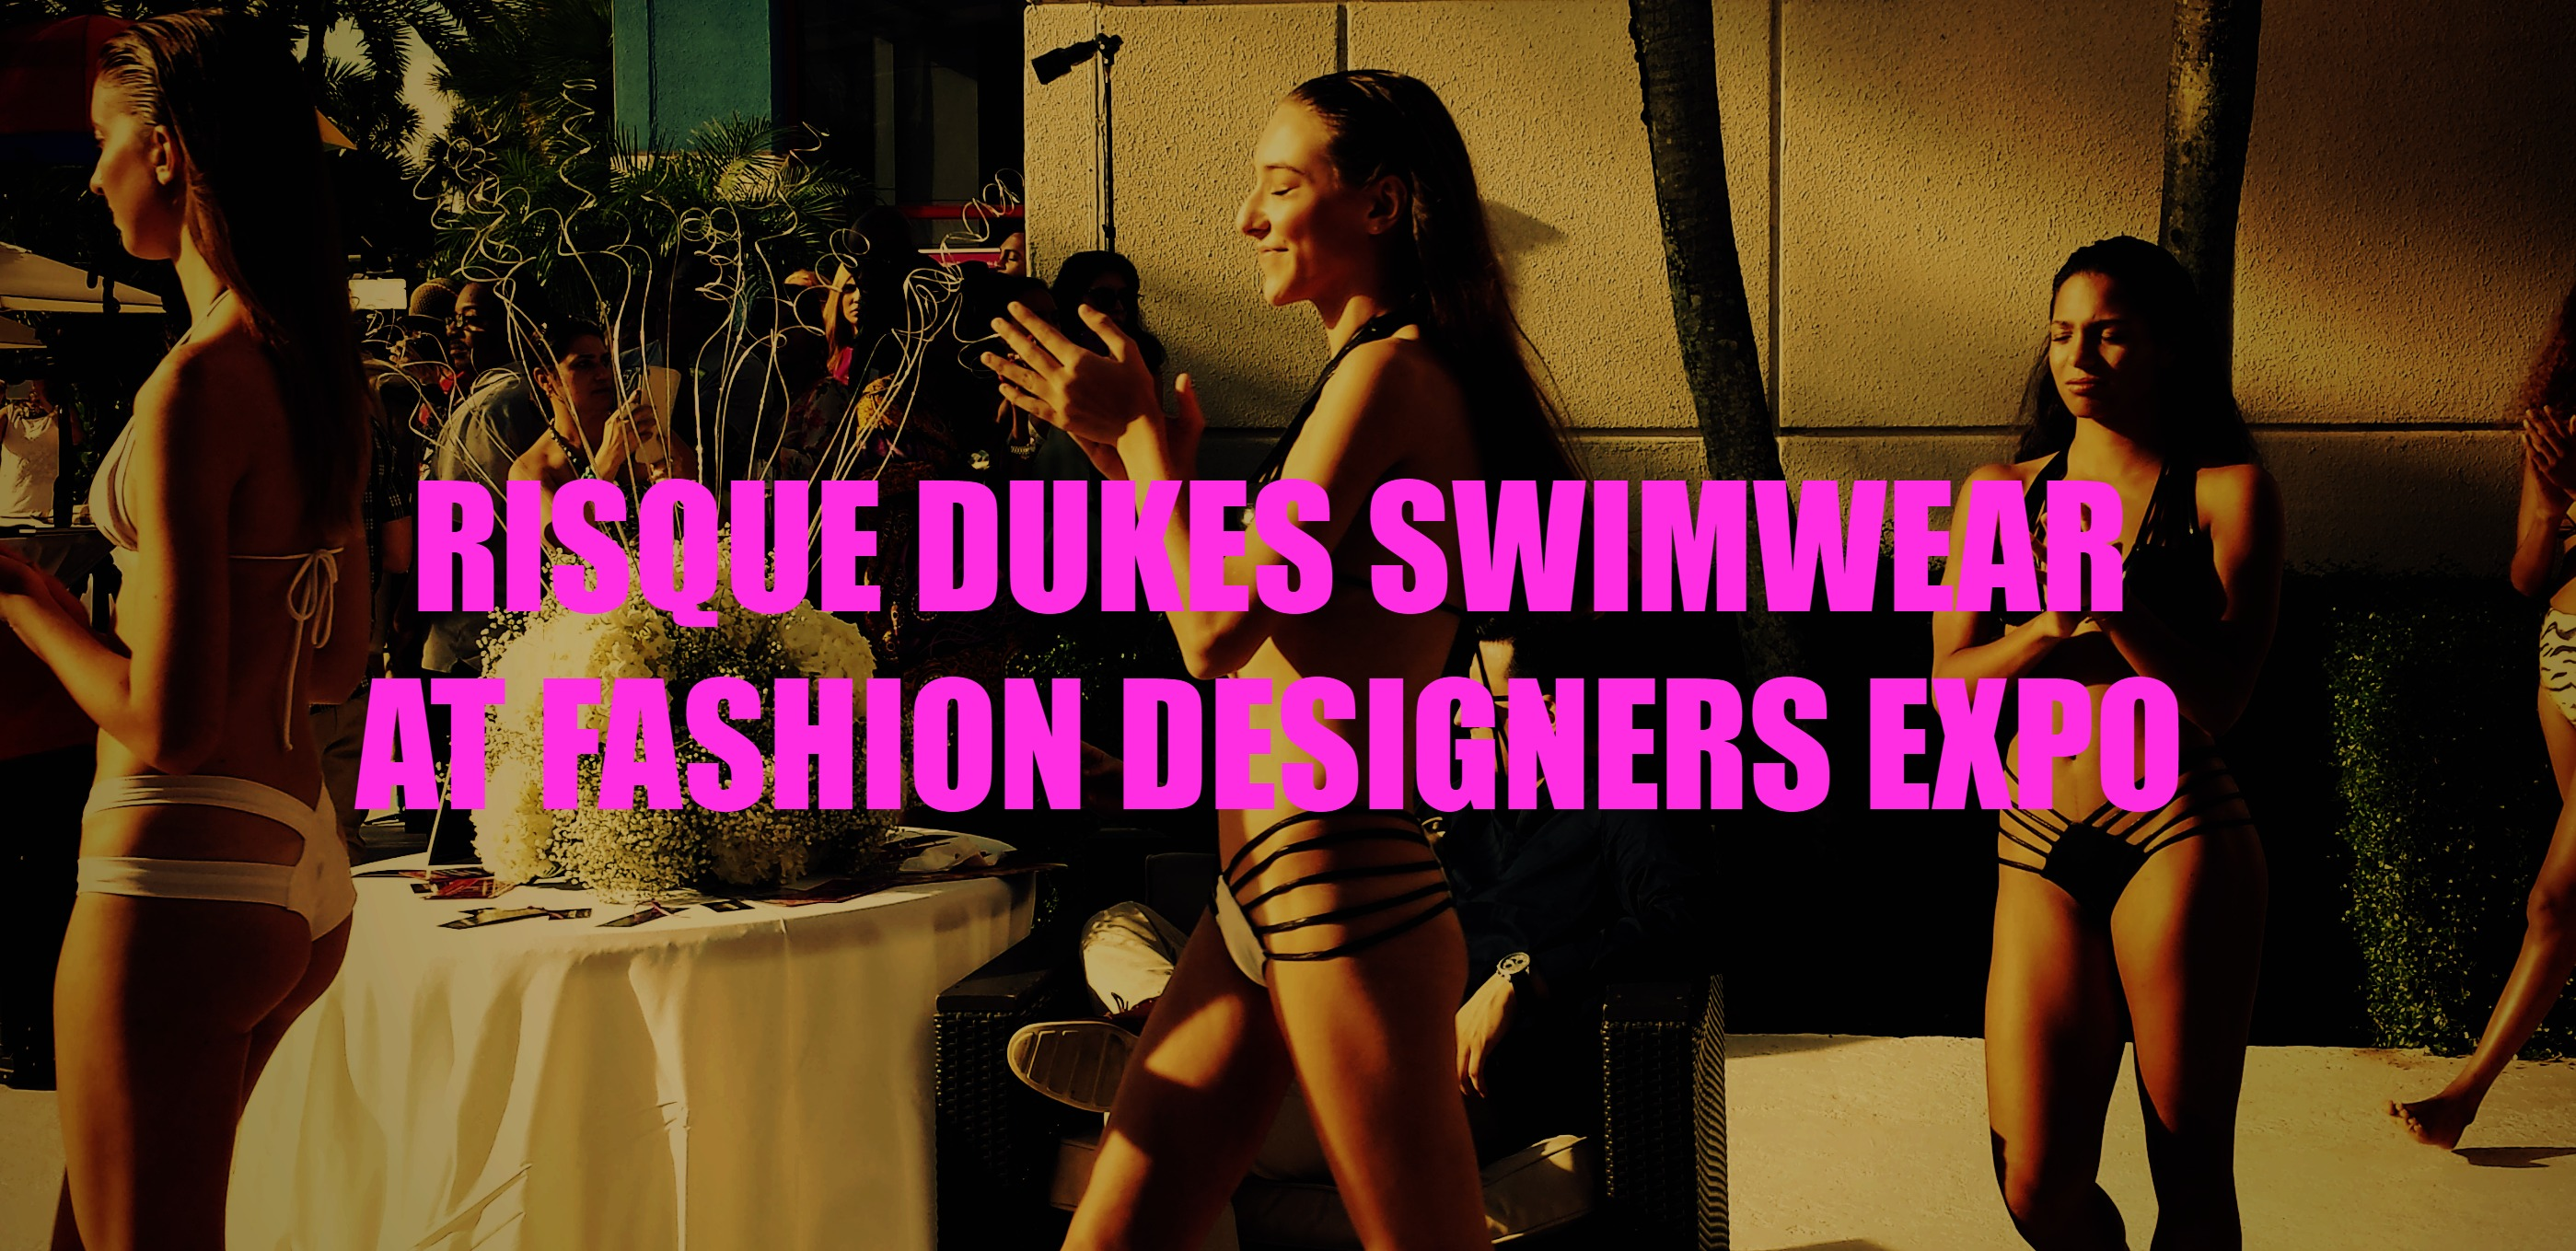 Risque Dukes swimwear at Fashion Designers Expo